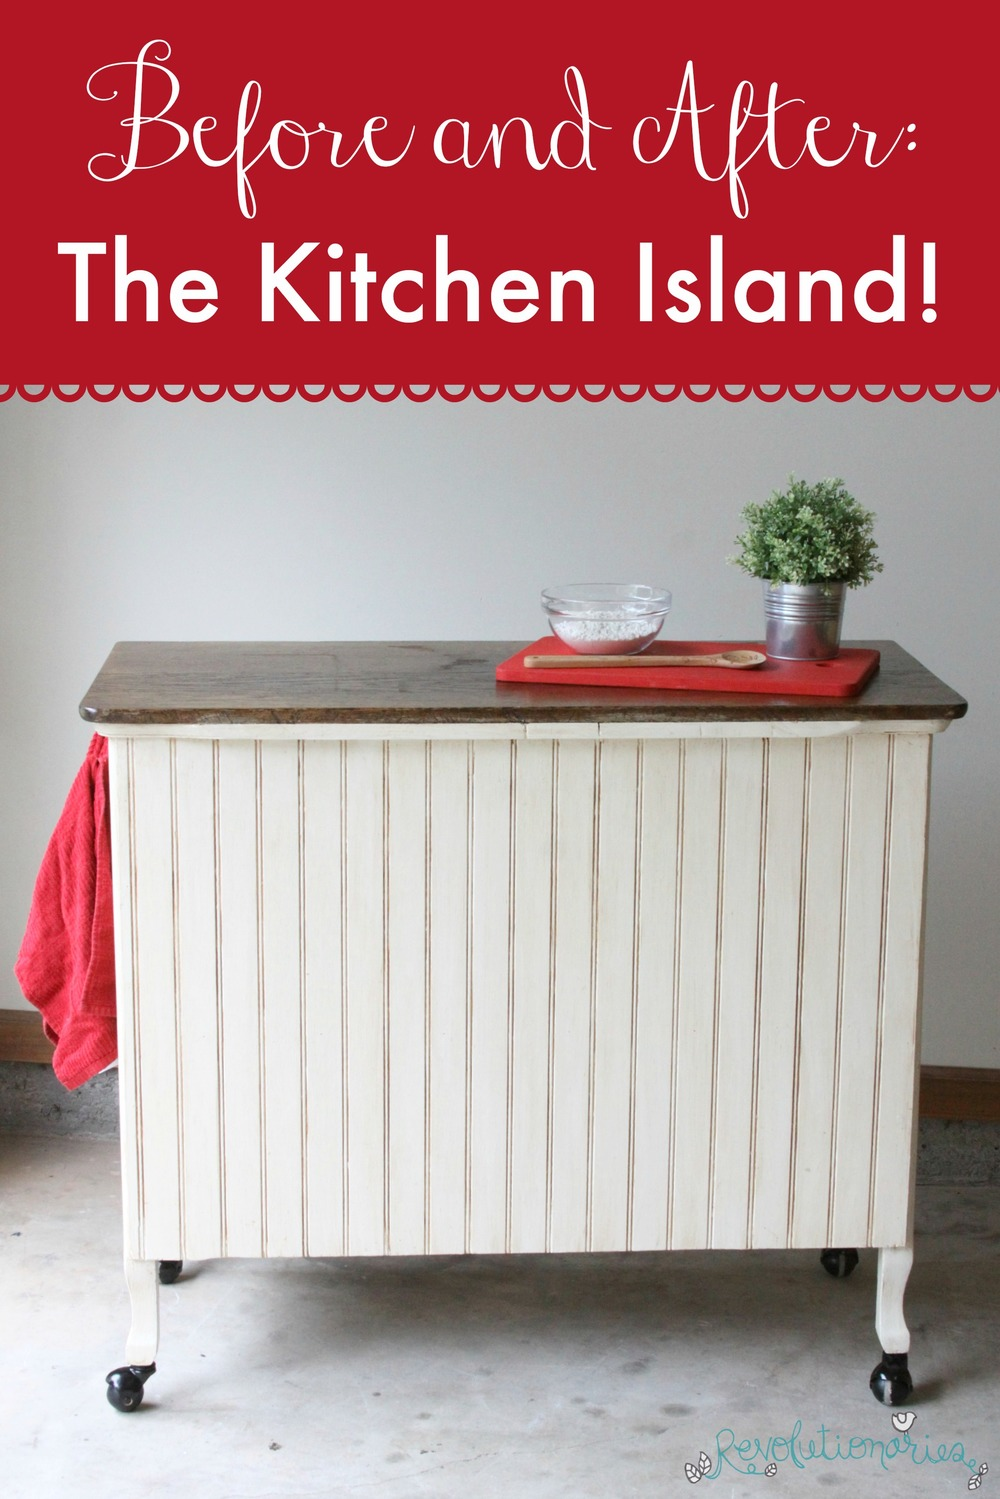 before-and-after-kitchen-island-7.jpg